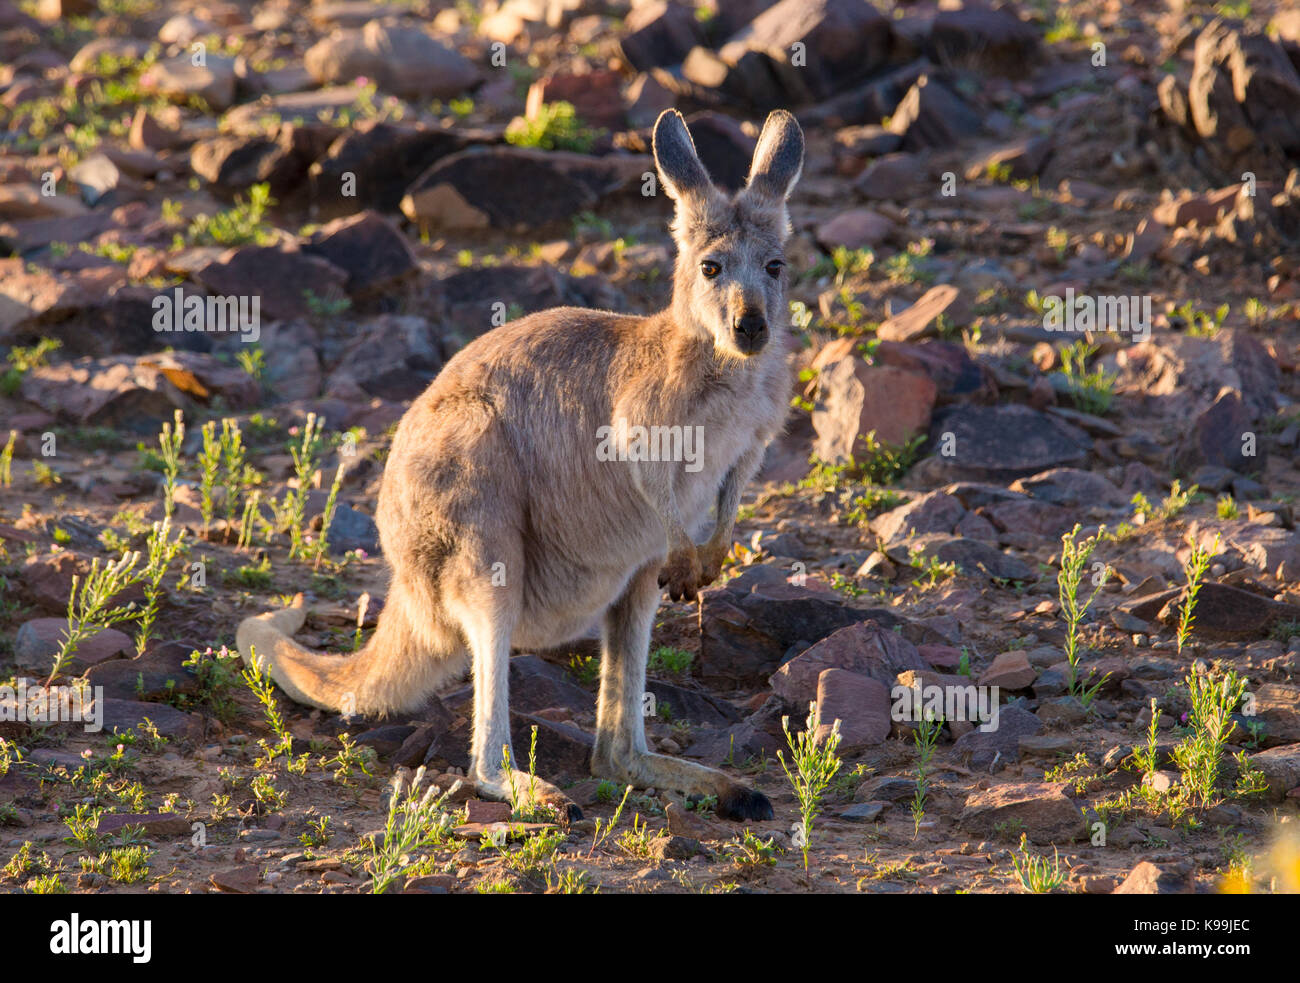 Common Wallaroo (Macropus robustus), Flinders Ranges, South Australia - Stock Image